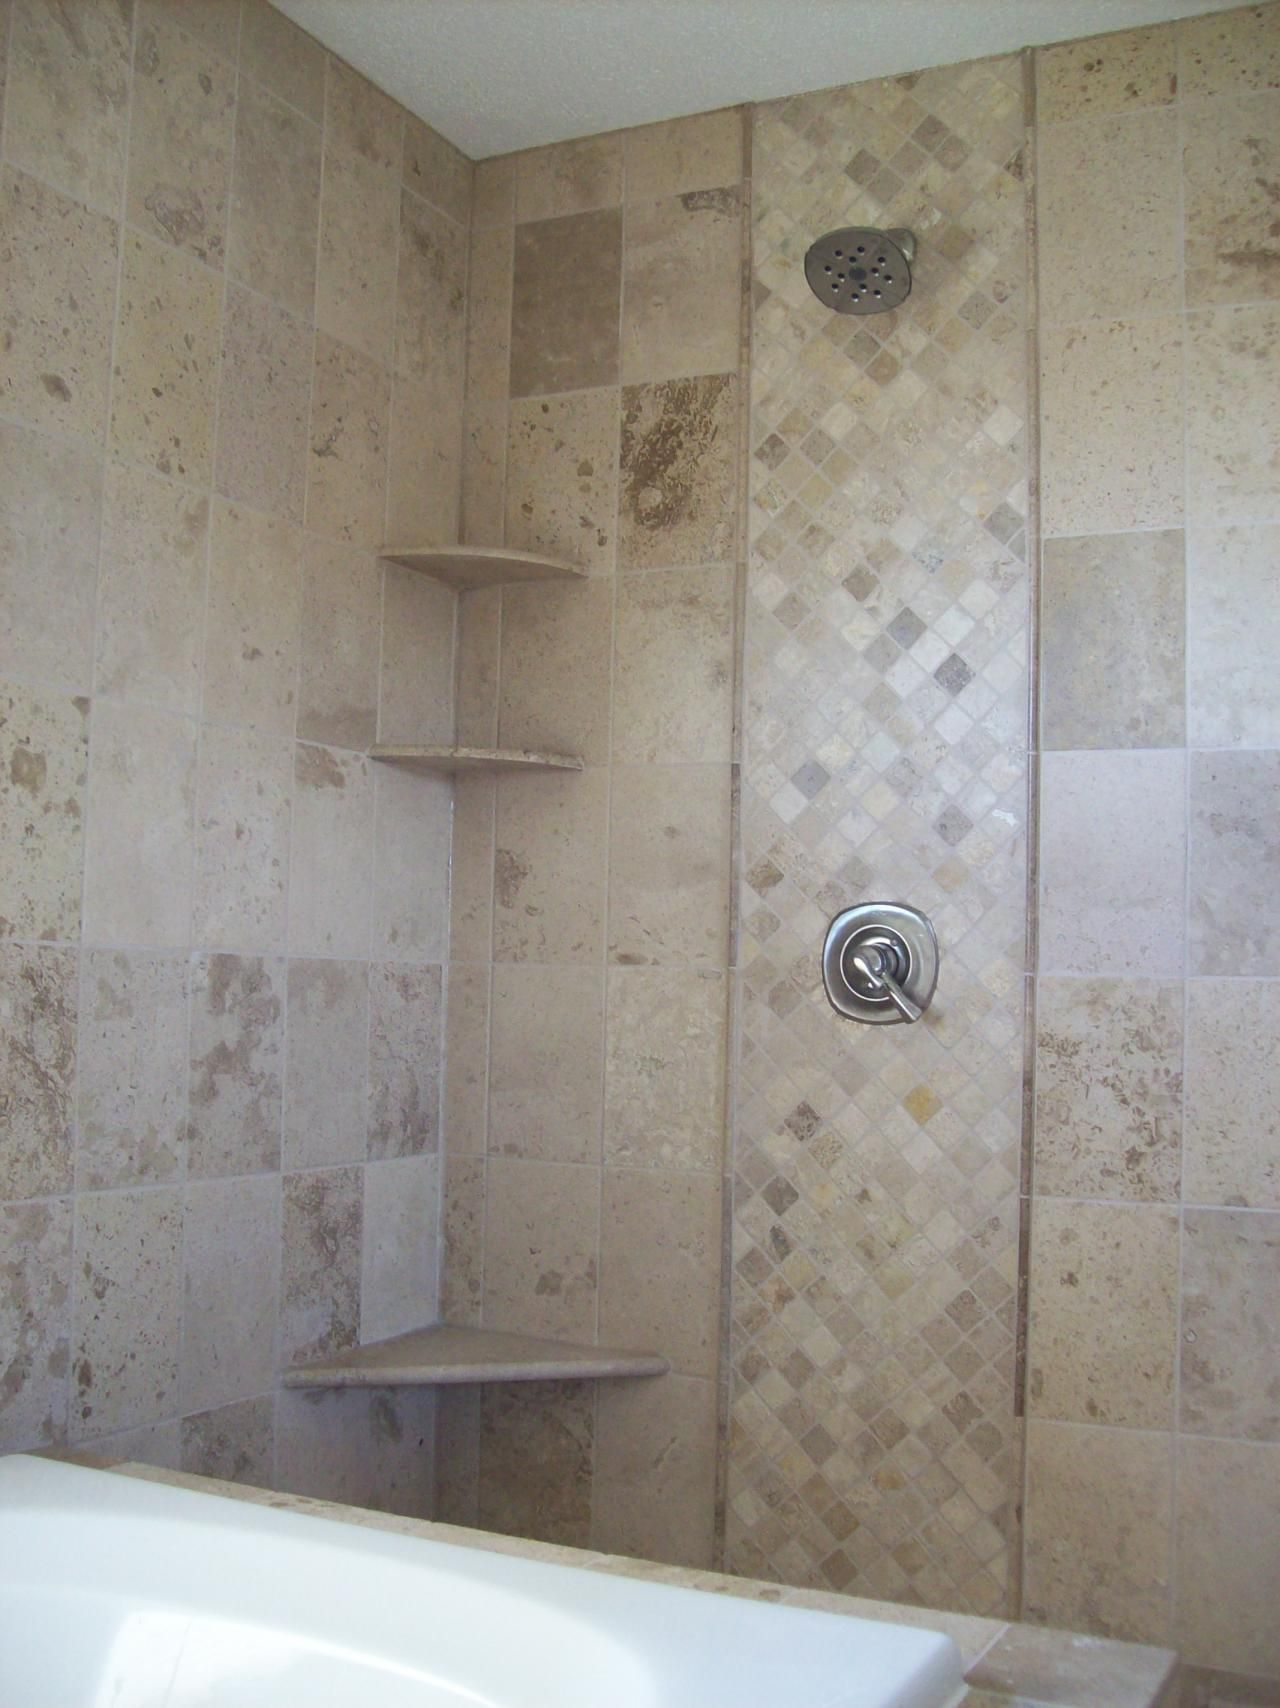 Natural Stone Tile Shower and Tub Surround, Tile Flooring, Accent ...